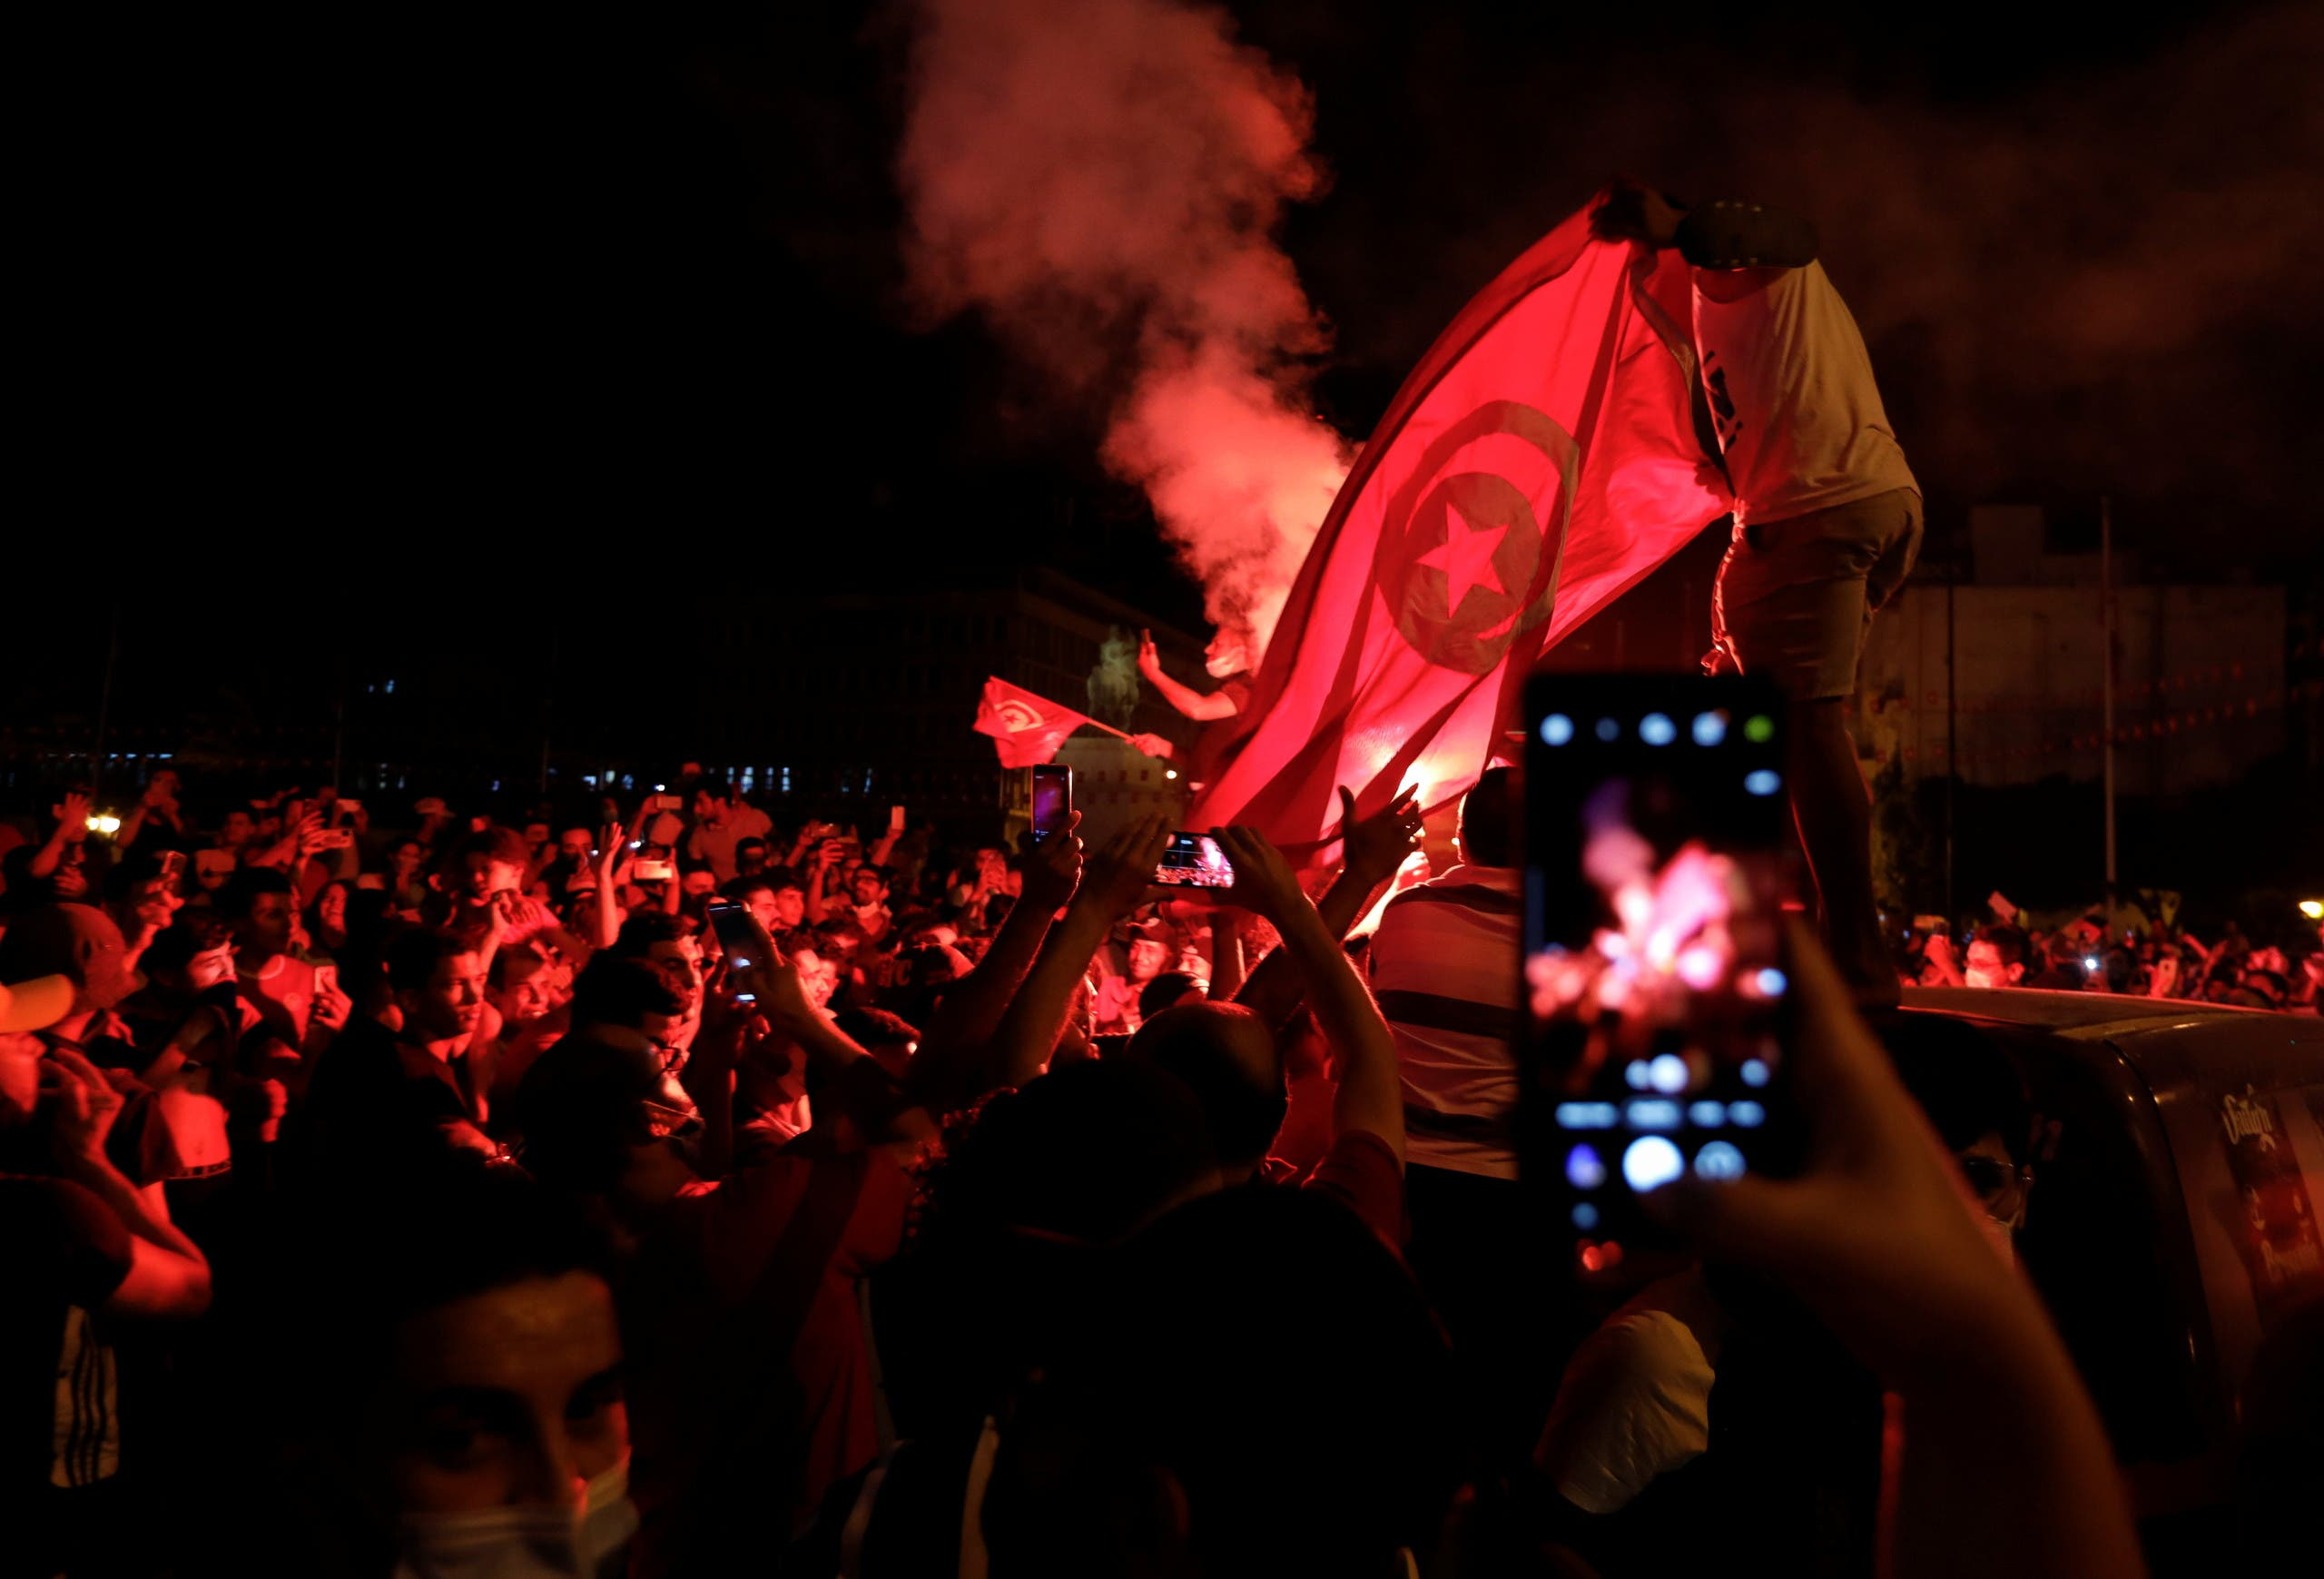 Supporters of Tunisia's President Kais Saied gather on the streets as they celebrate after he dismissed the government and froze parliament, in Tunis, Tunisia July 25, 2021. (Reuters)